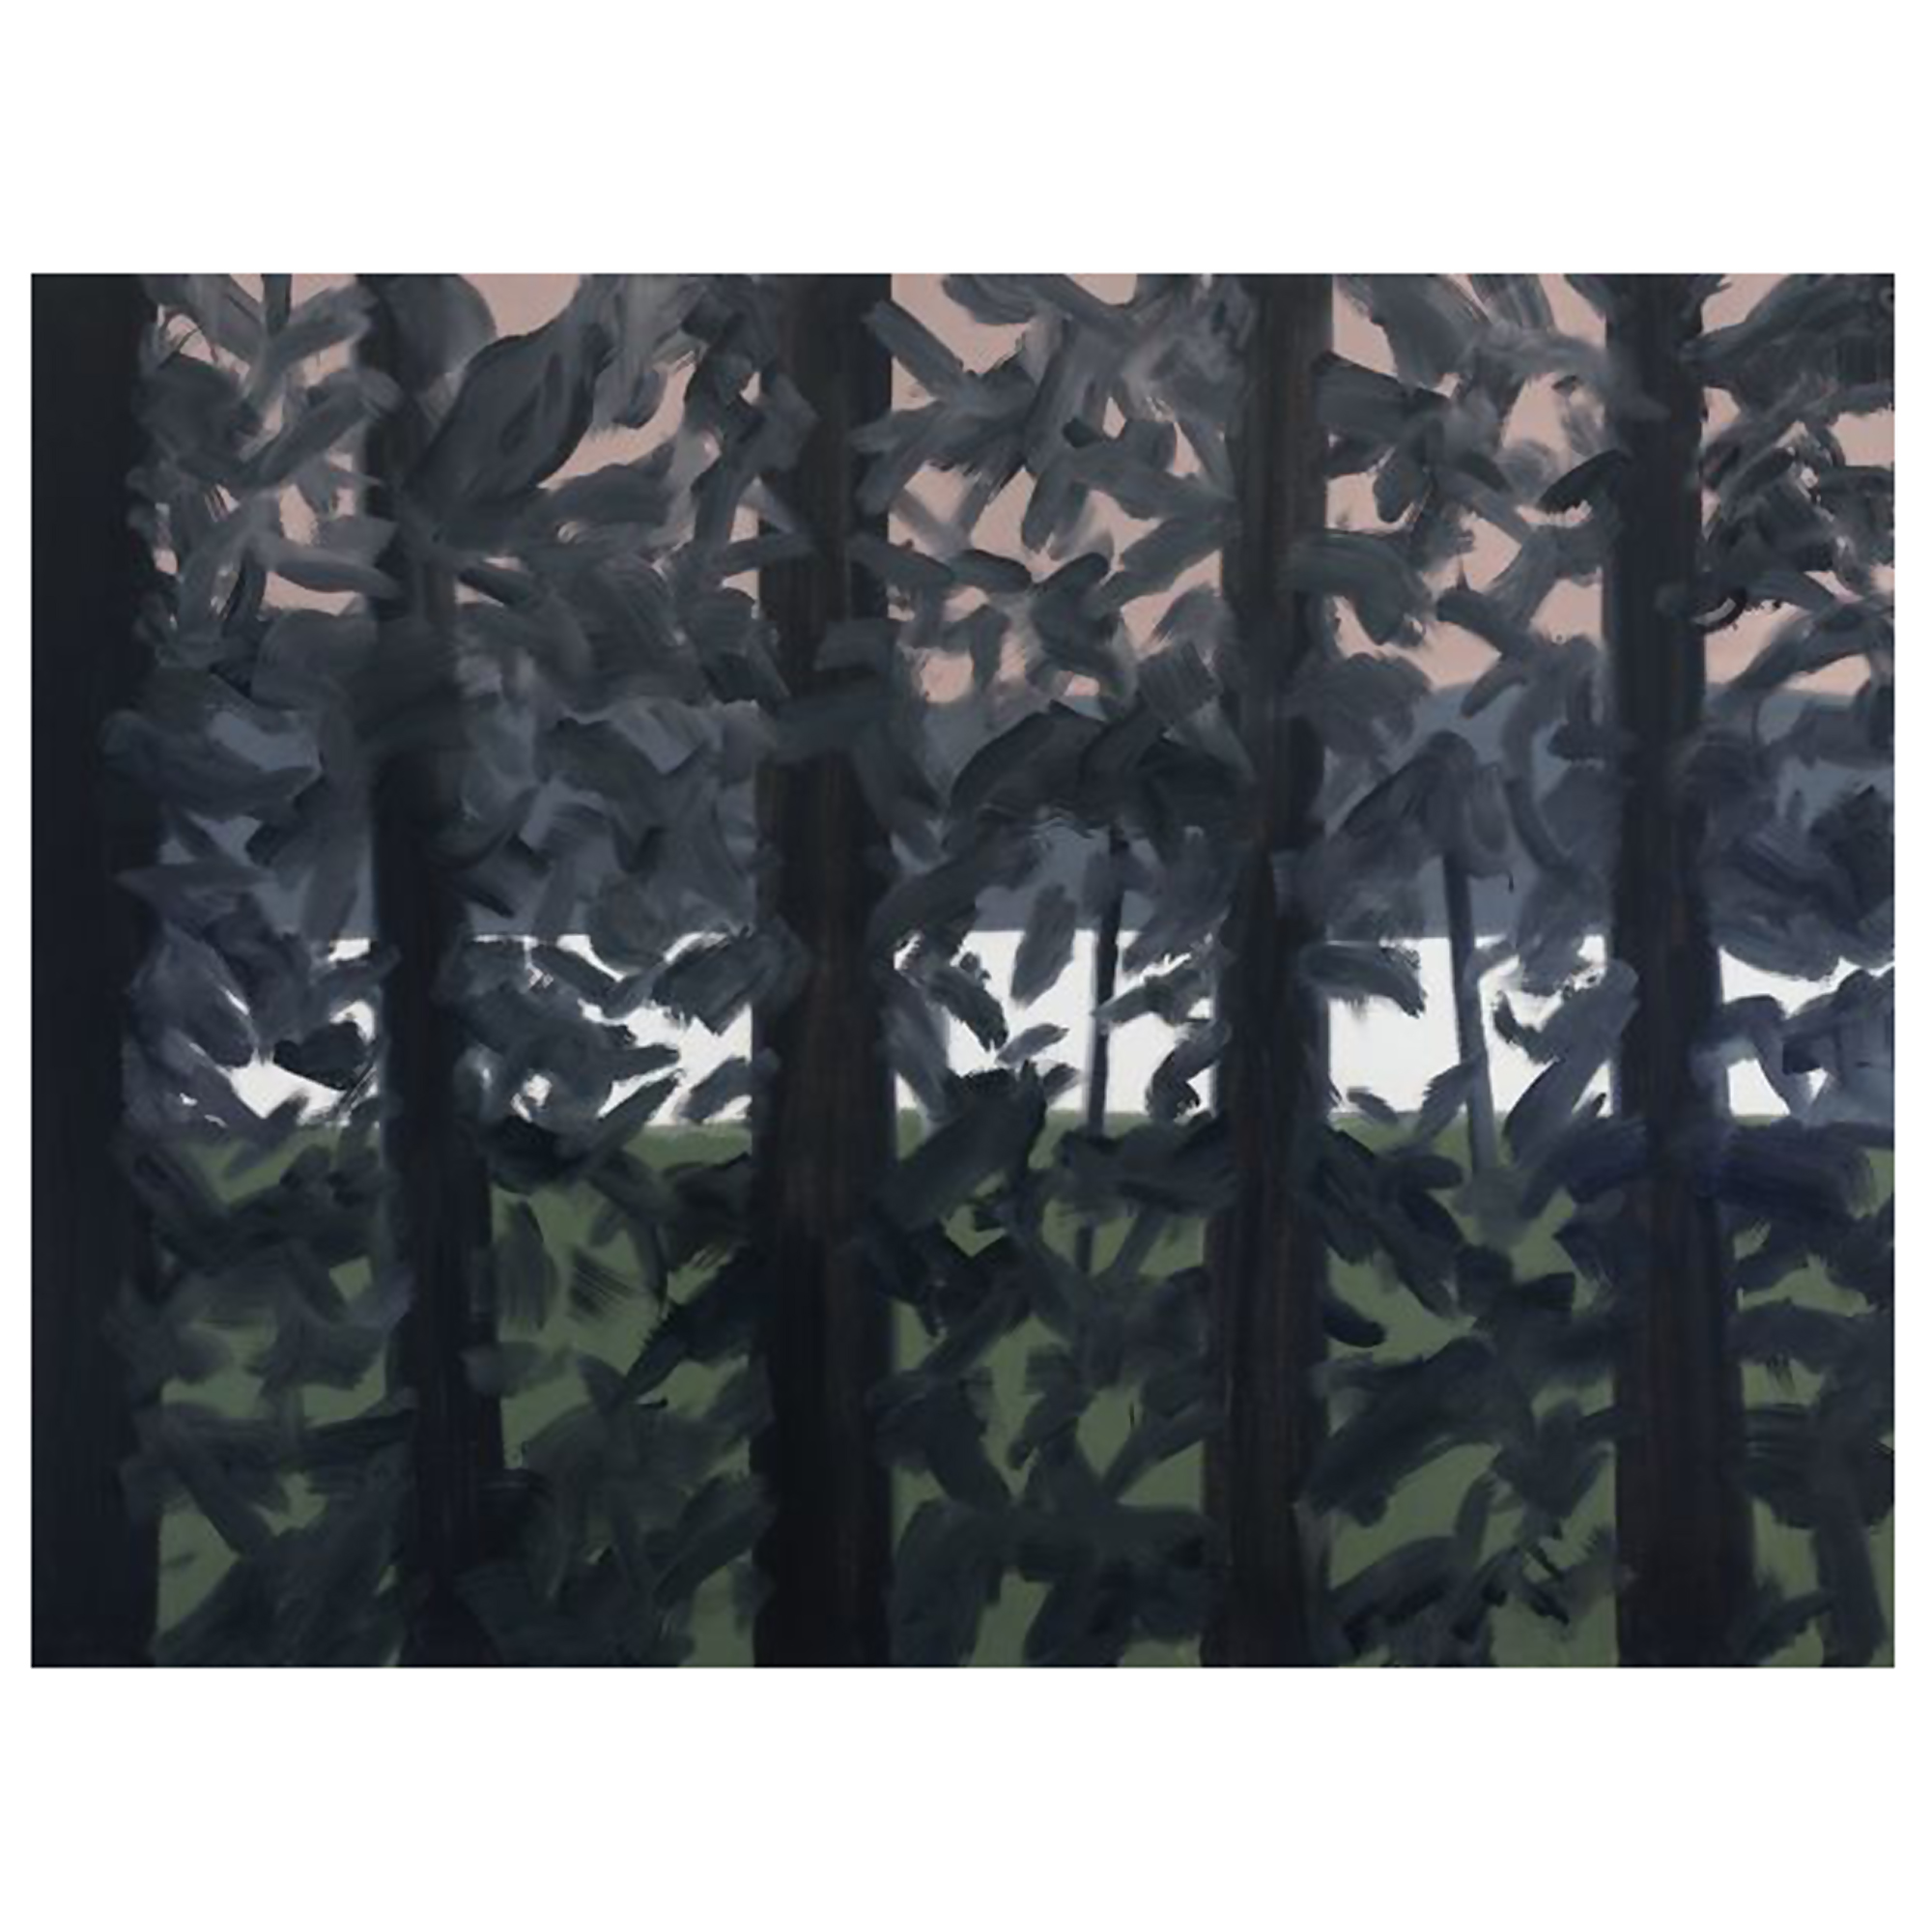 Alex Katz, Untitled (Landscape), 2013. Oil on linen.jpg